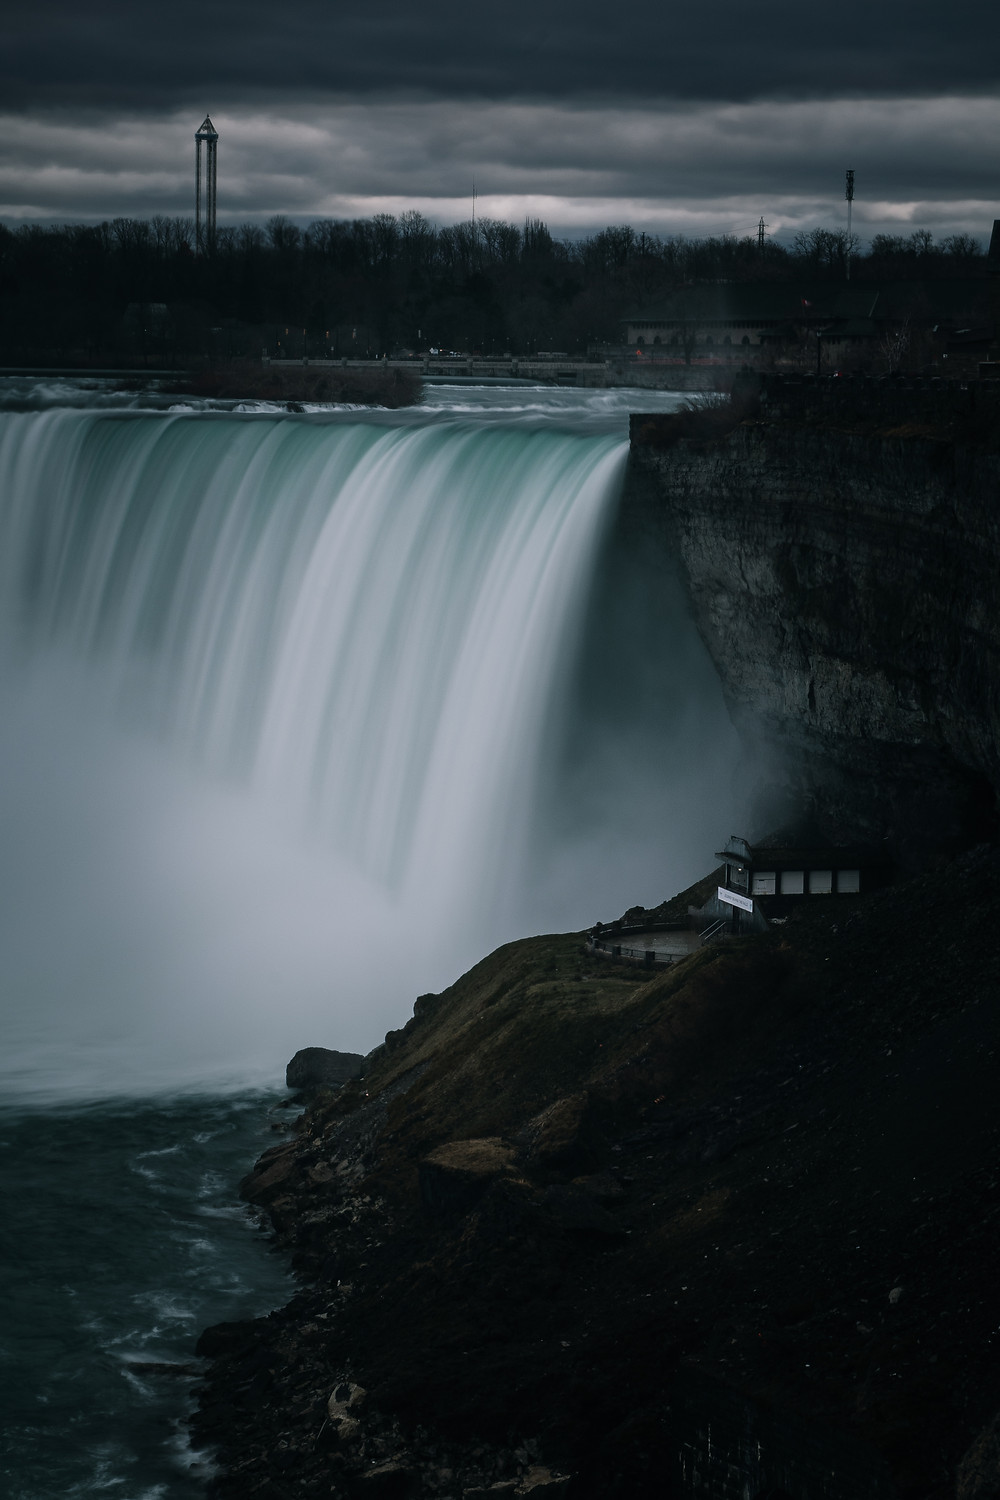 A view of Niagara Falls from the Canadian side.